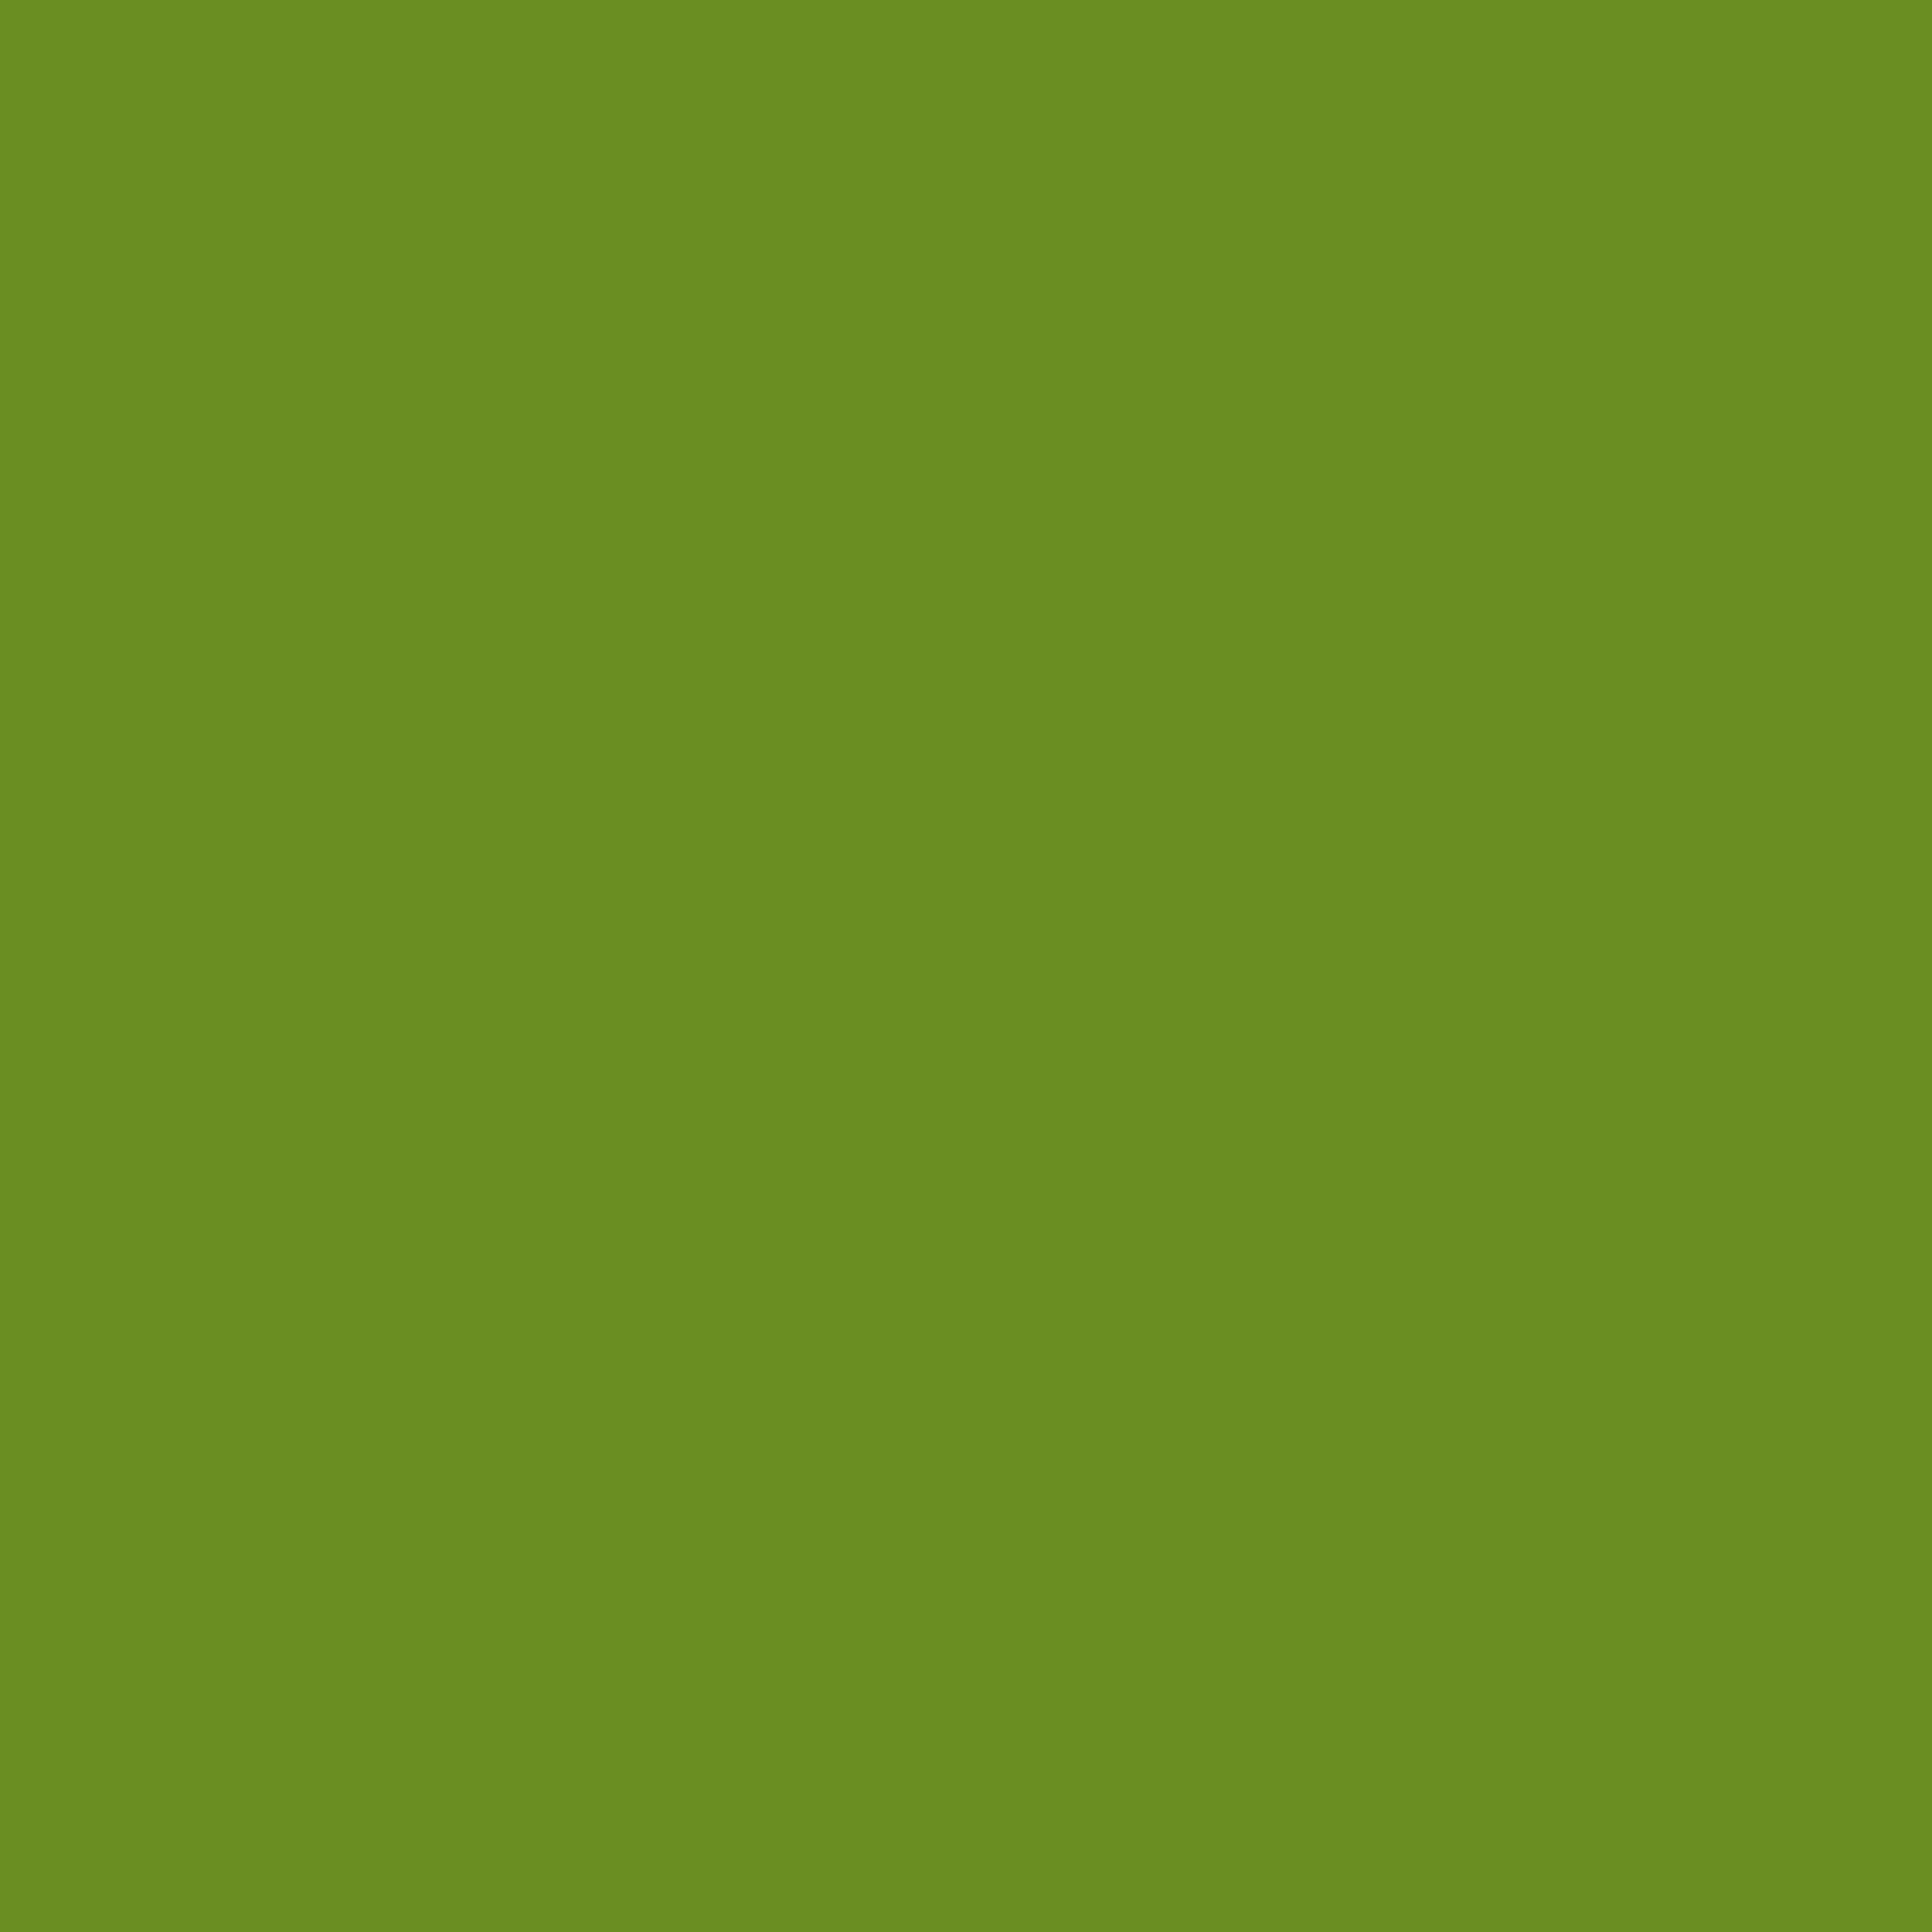 3600x3600 Olive Drab Number Three Solid Color Background